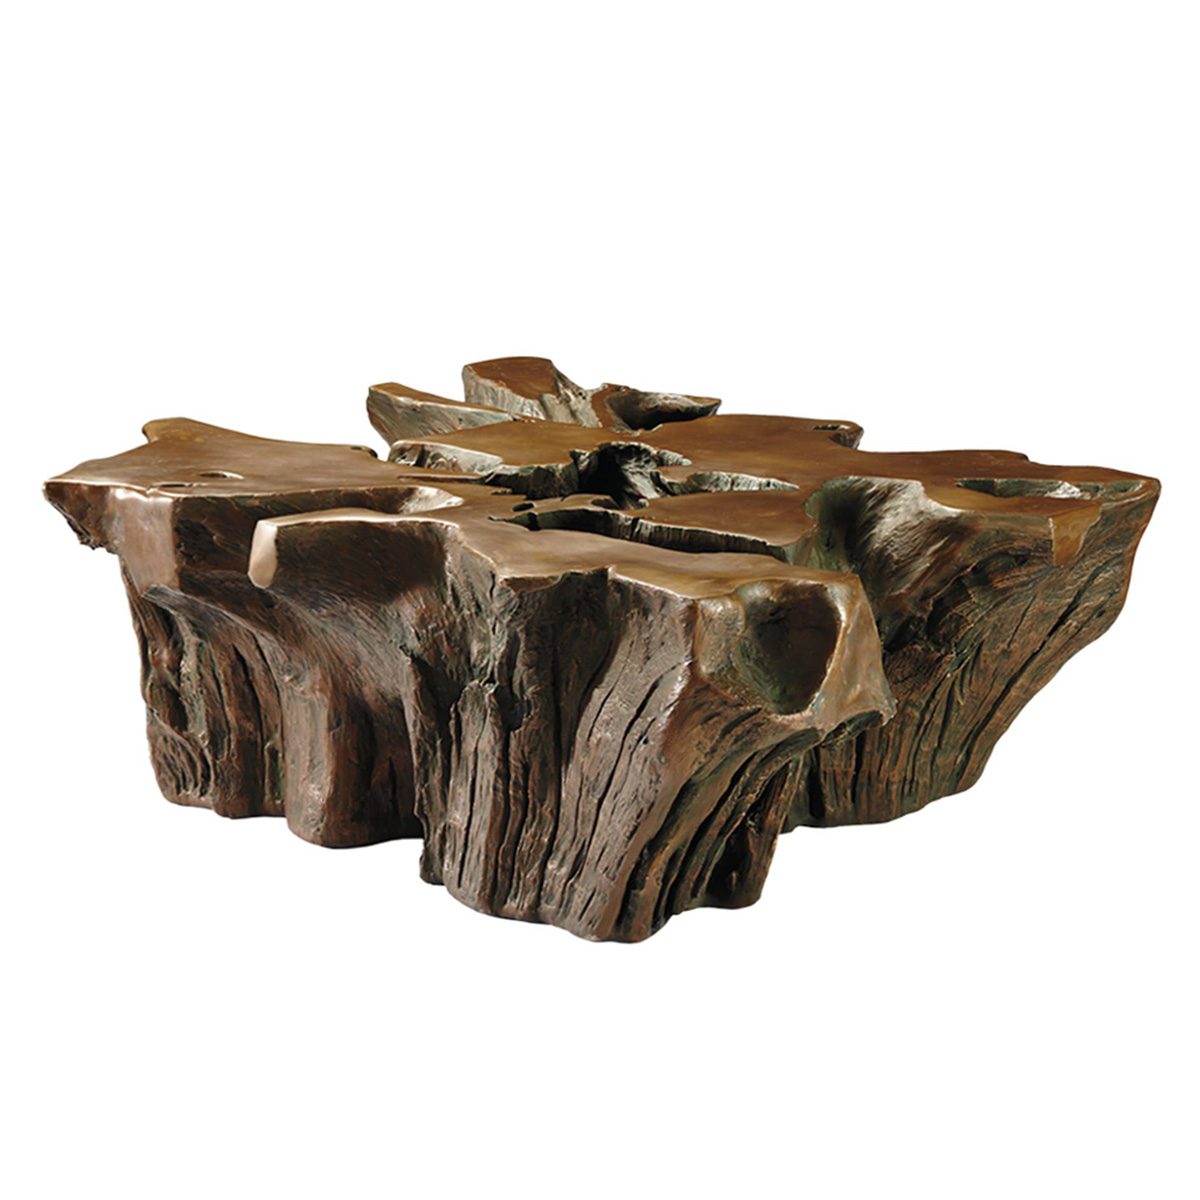 Animal Base Coffee Tables Root Coffee Table The Green Head